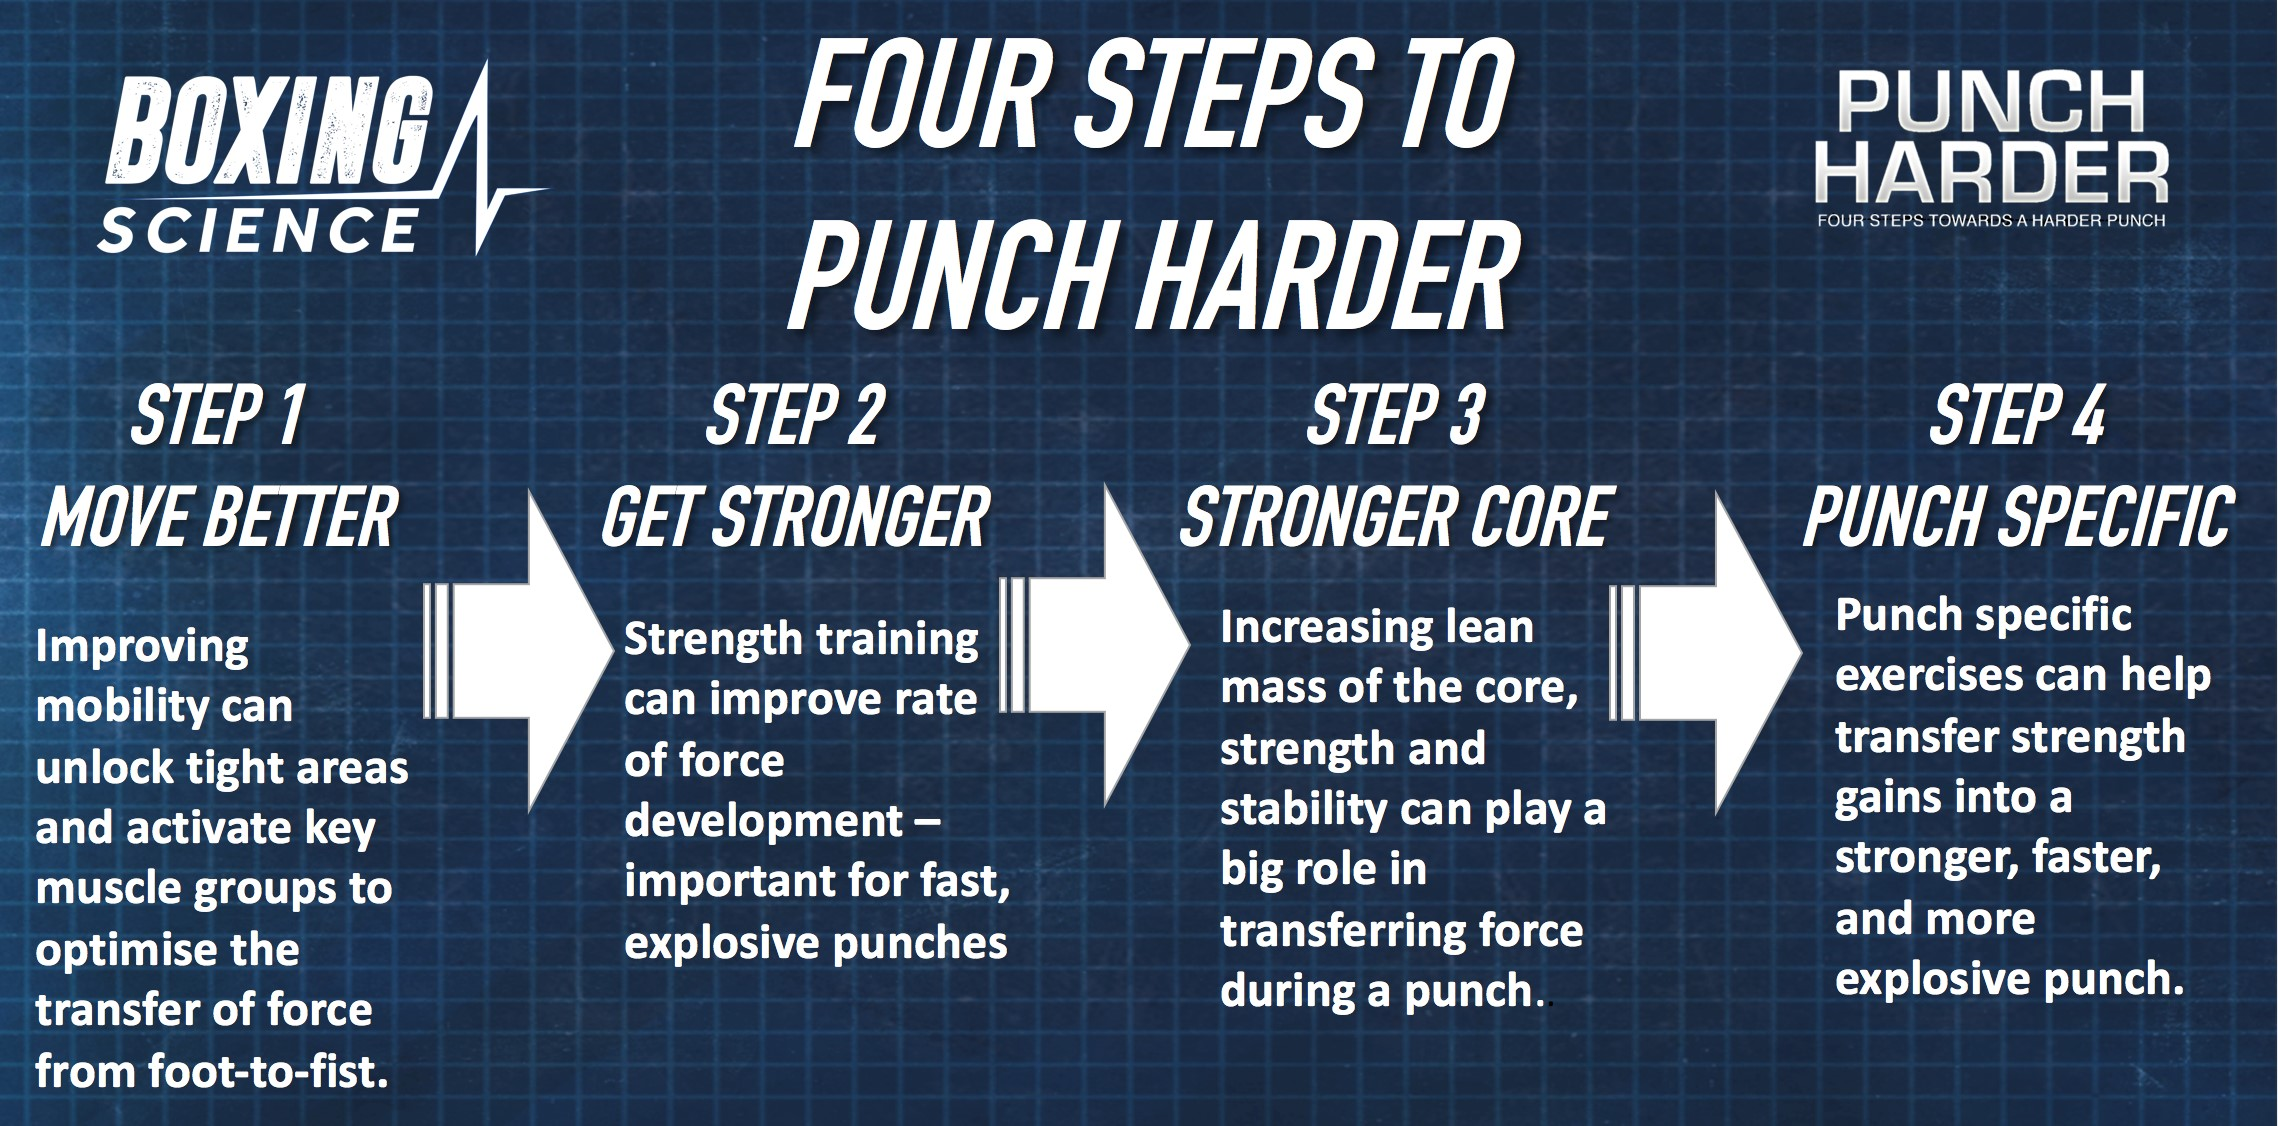 Boxing Science - how to punch harder - Boxing News